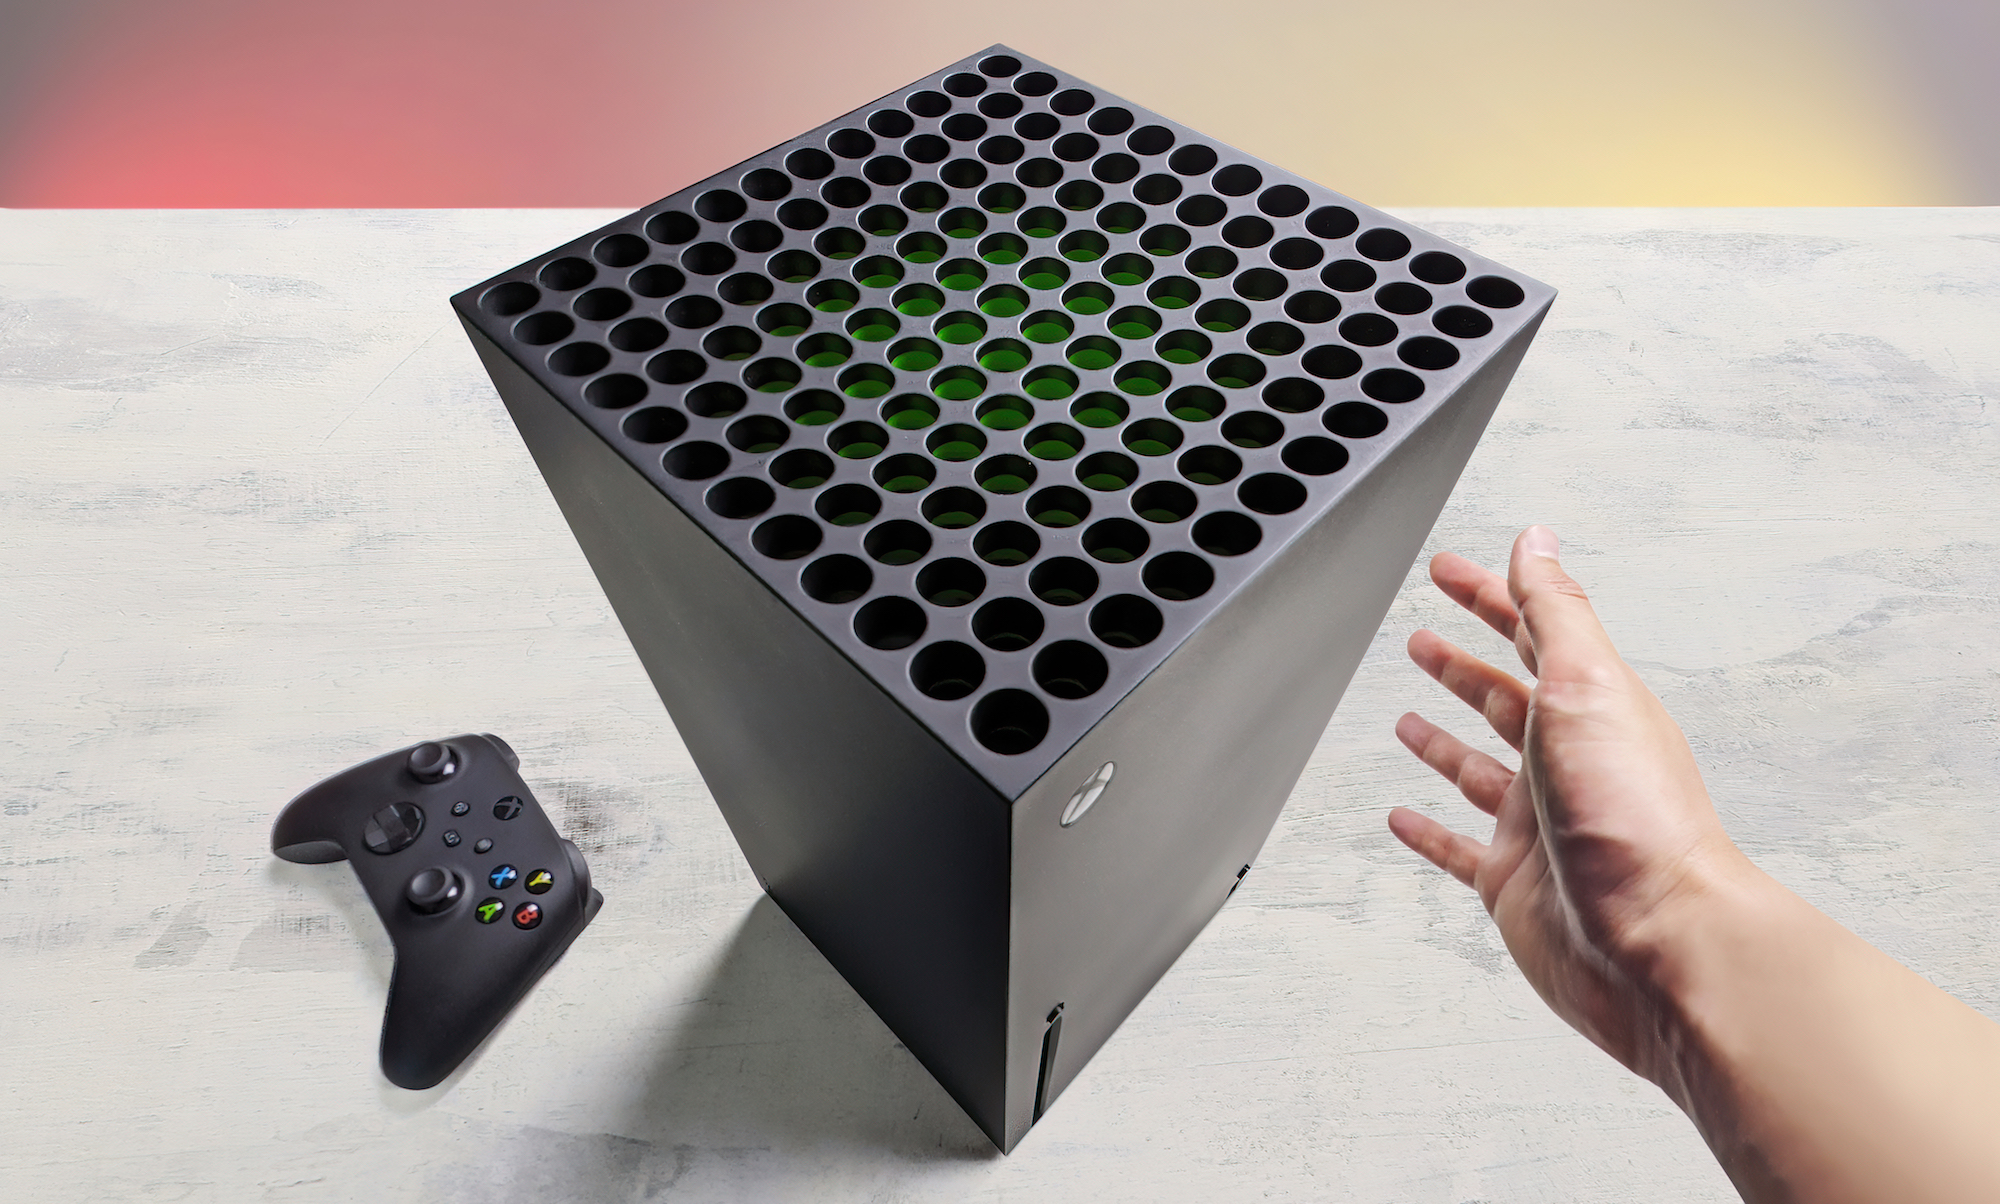 Where To Buy Xbox Series X Restock Updates For Walmart Best Buy And More Tom S Guide I think this bundle has been on display for awhile at costco here in vancouver and richmond. tom s guide